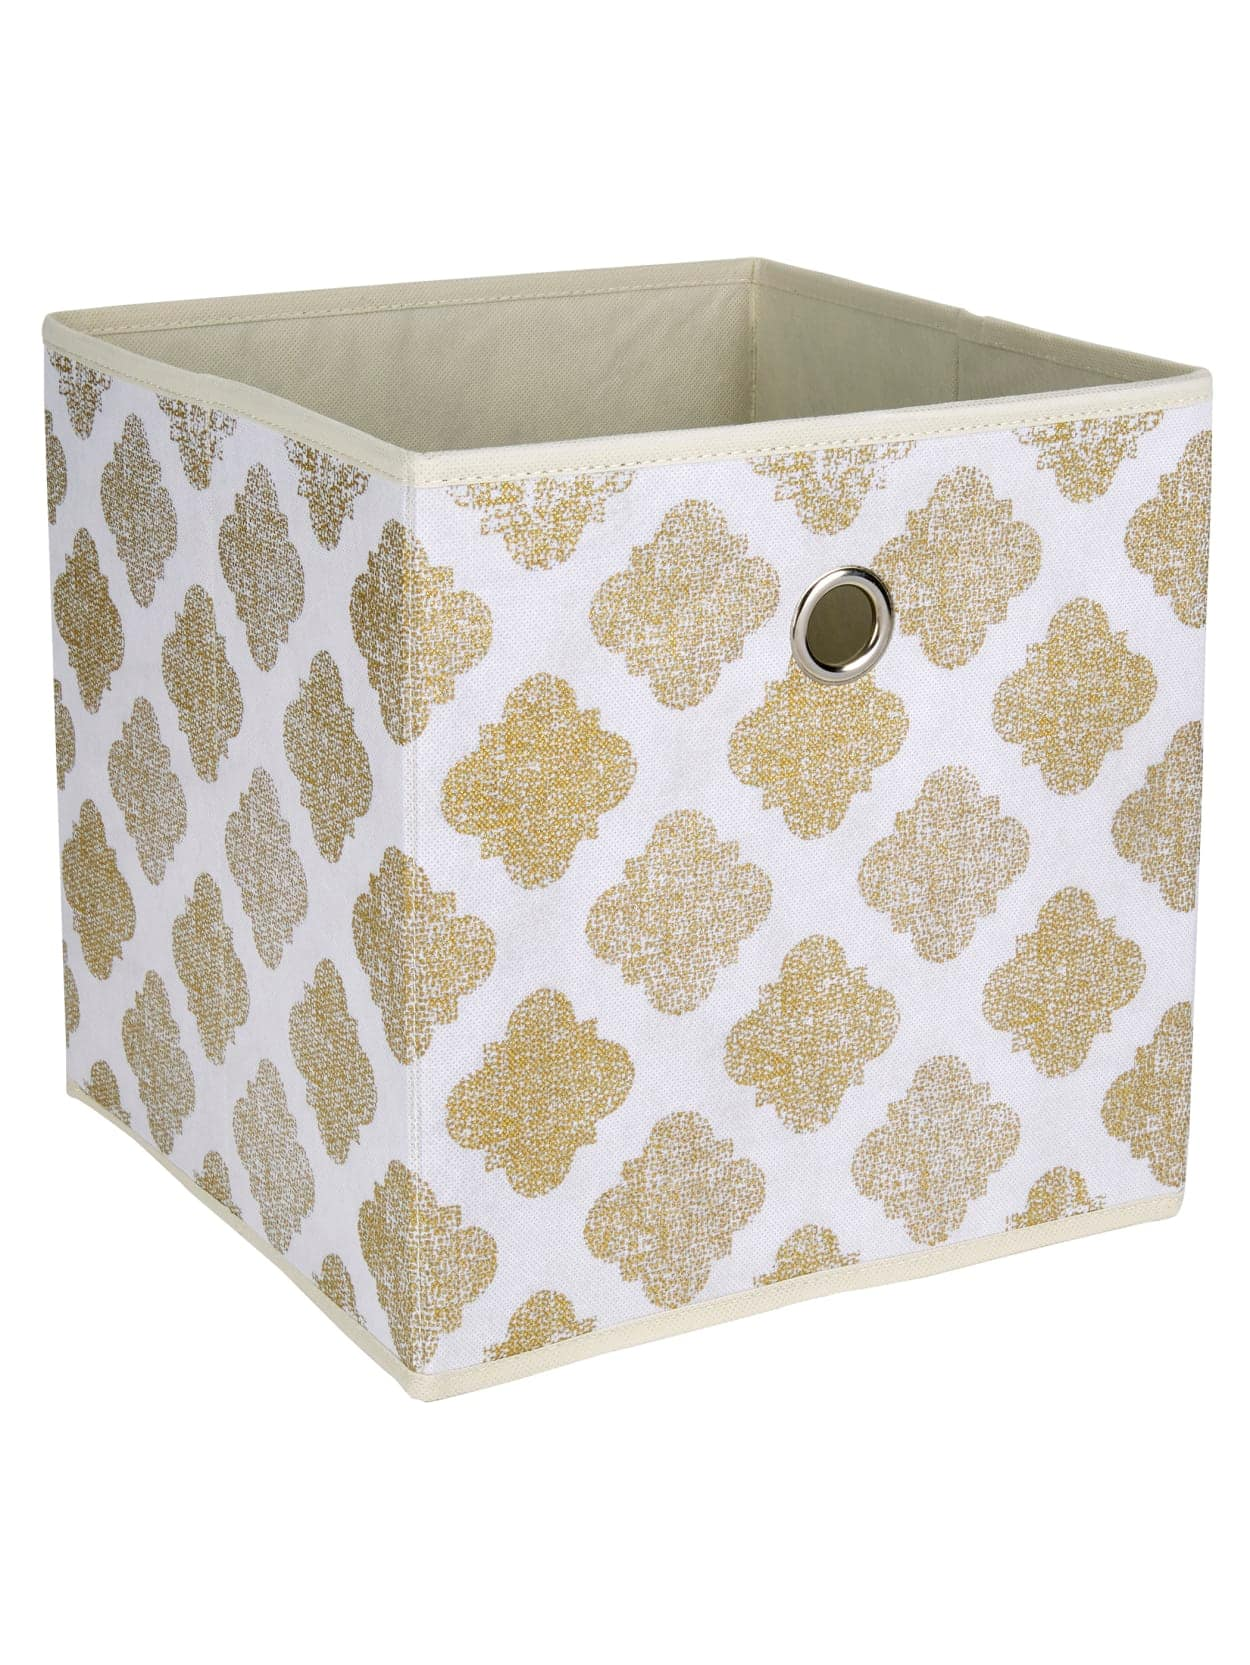 "Realspace 12"" x 12"" x 12"" Fabric Storage Cube (Metallic Gold Print)"